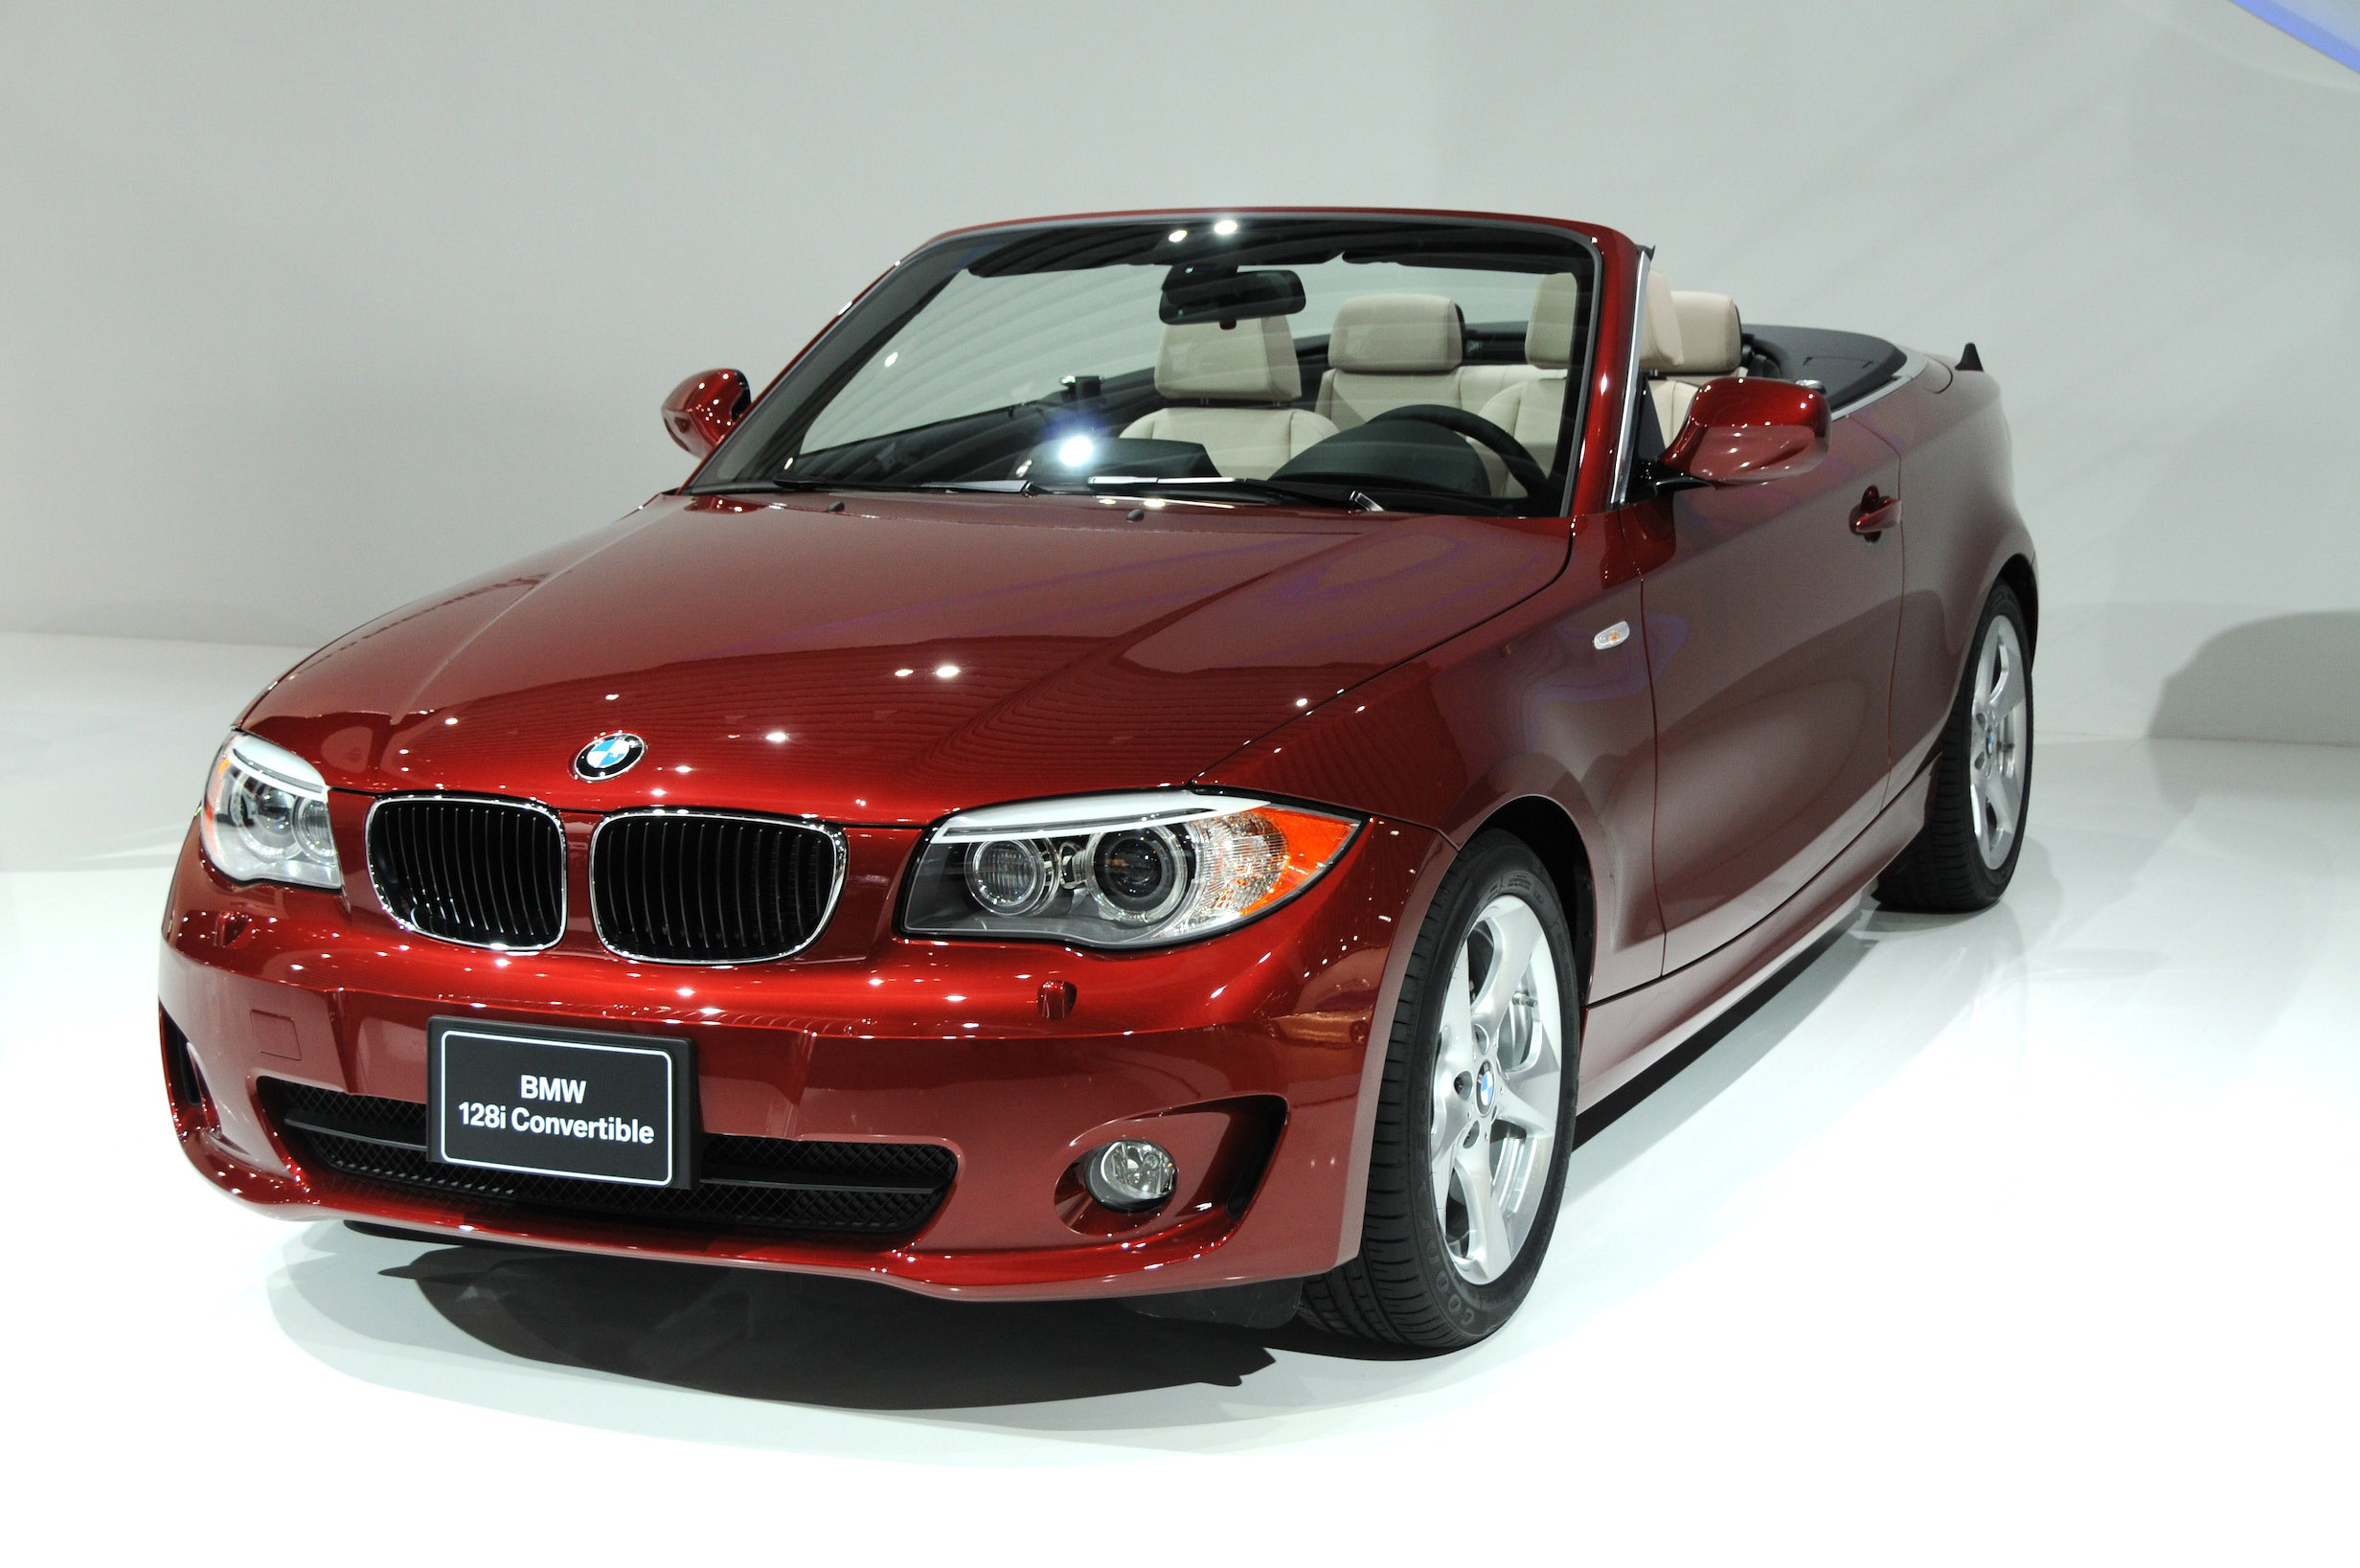 bmw serie 1 2011 2011 bmw 1 series information and photos momentcar bmw serie 1 116i 2011. Black Bedroom Furniture Sets. Home Design Ideas